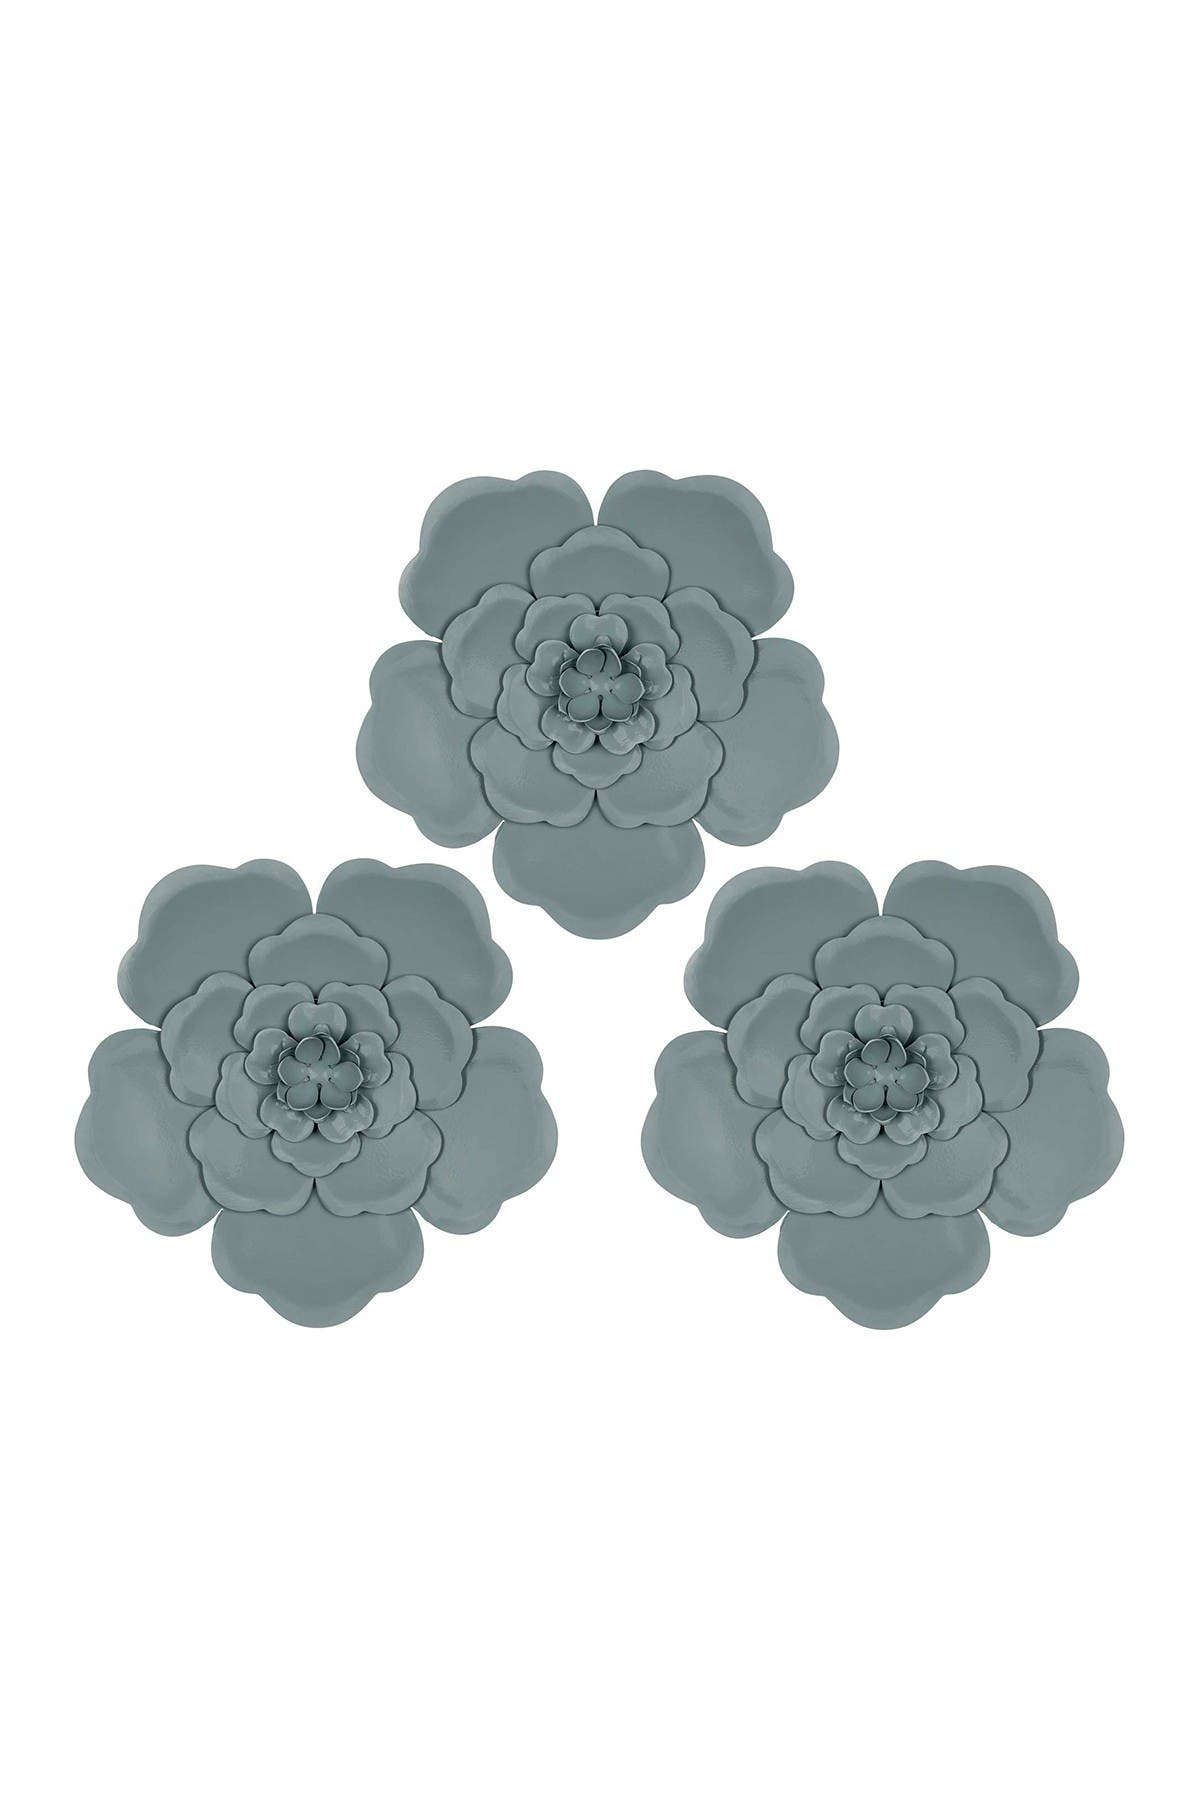 Image of Stratton Home Distressed Light Blue Flowers Wall Decor - Set of 3